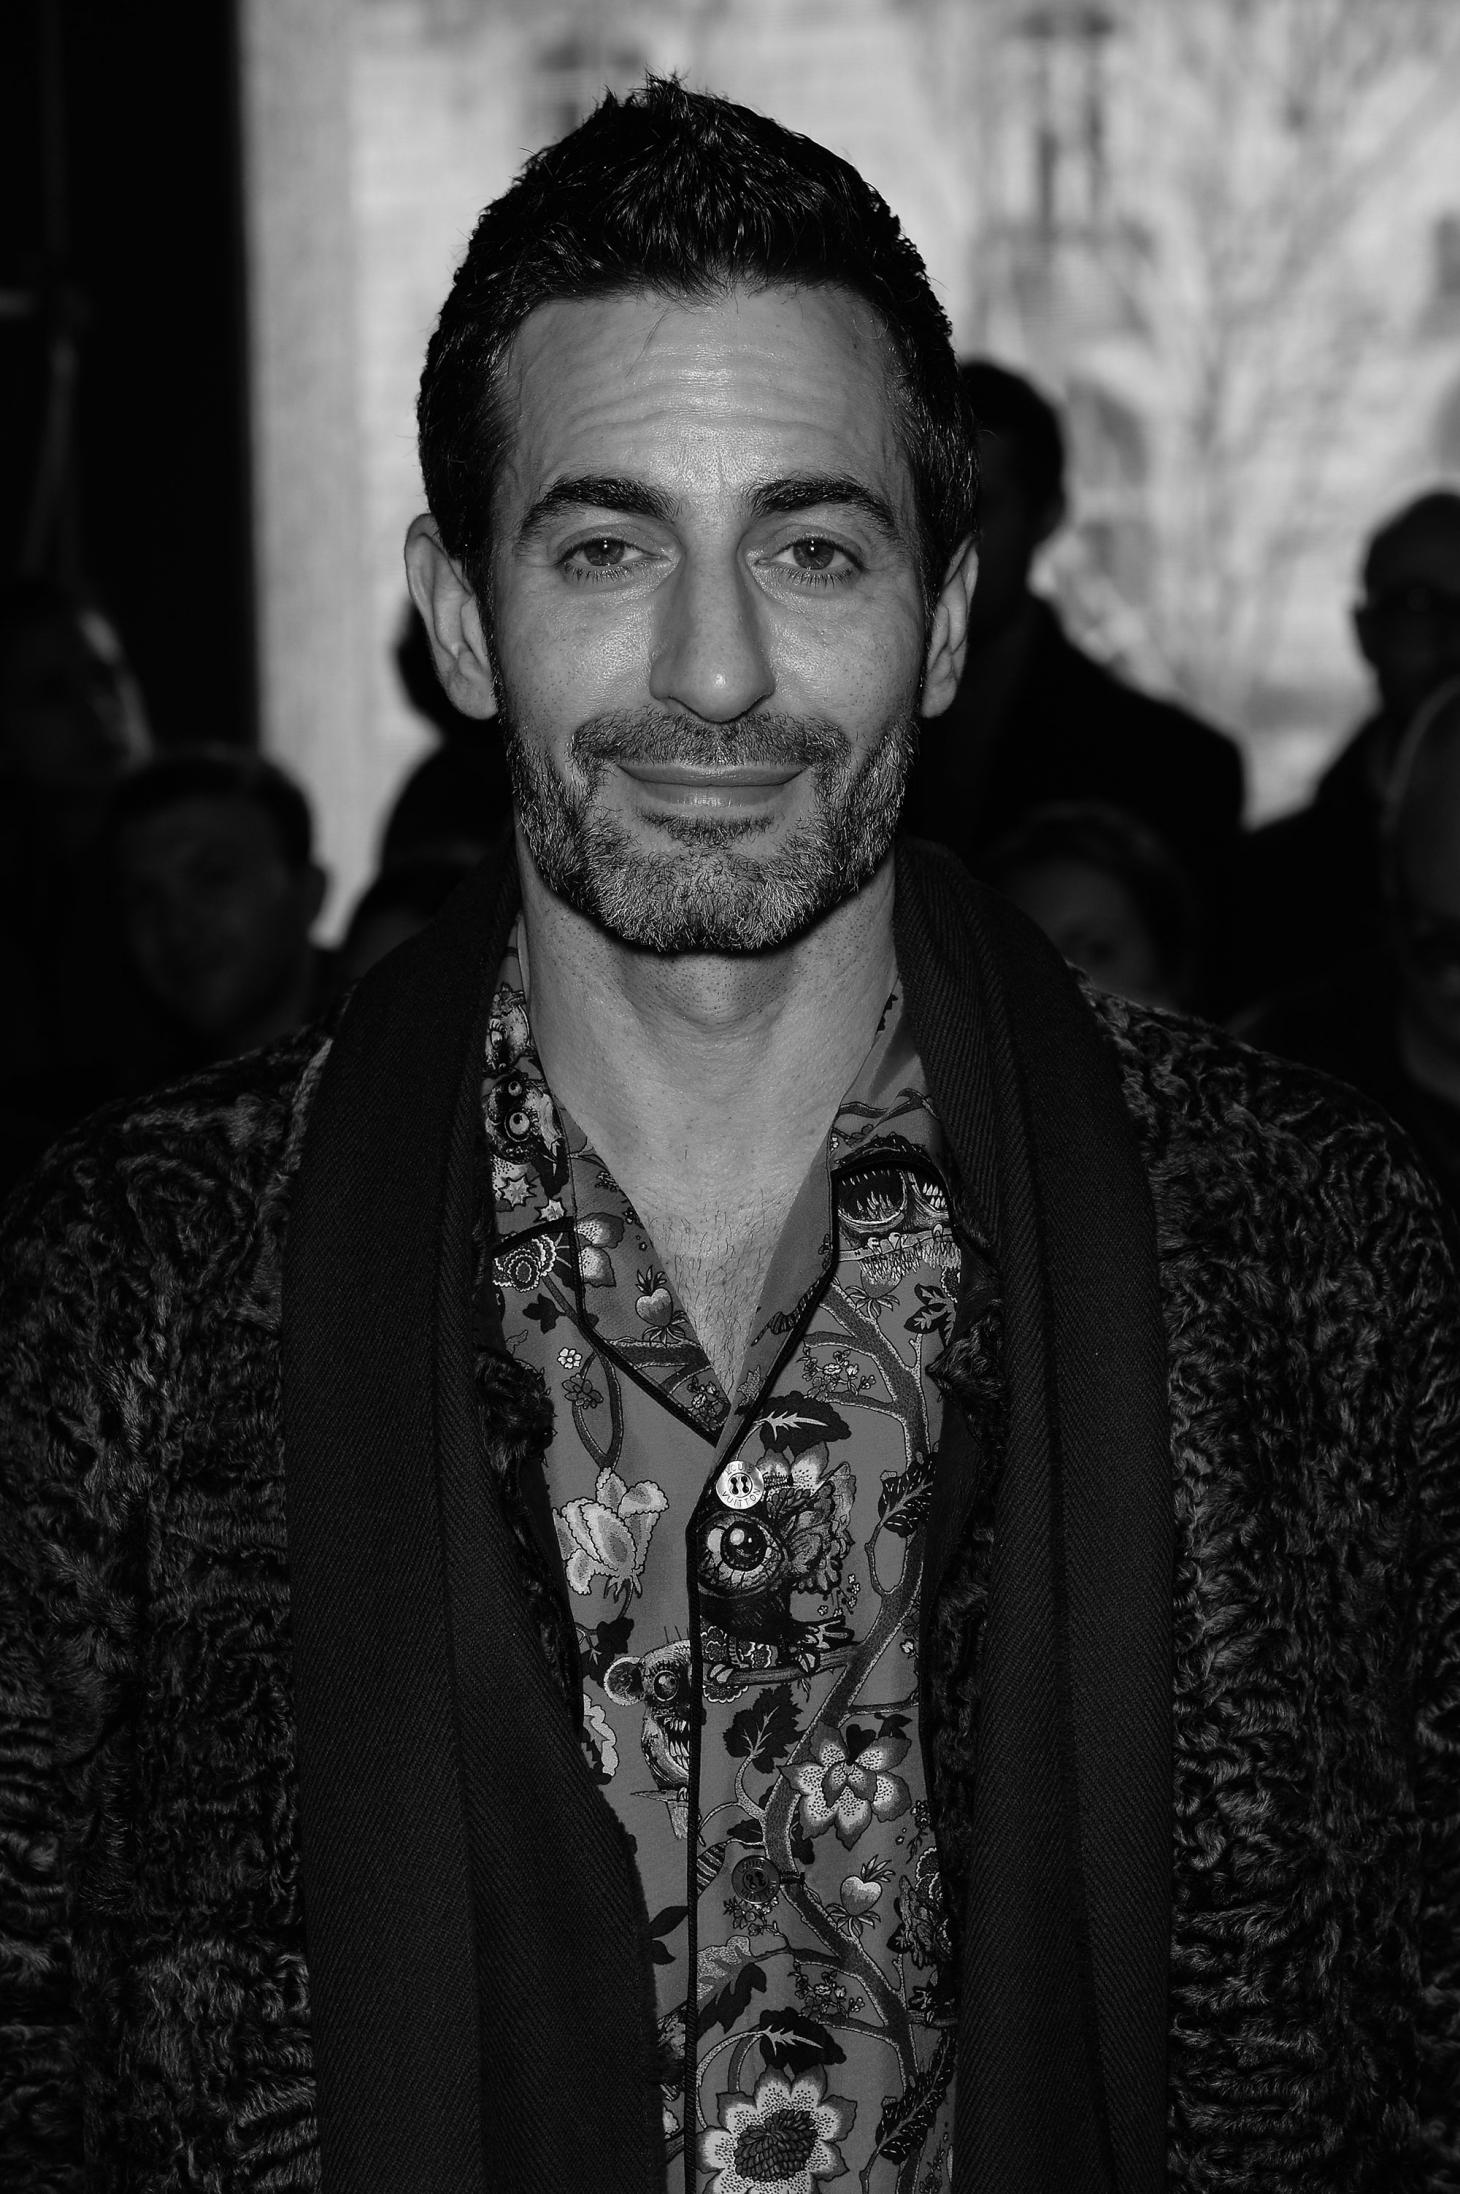 Marc Jacobs, photography by Dominique Charriau, sourced by GettyImages